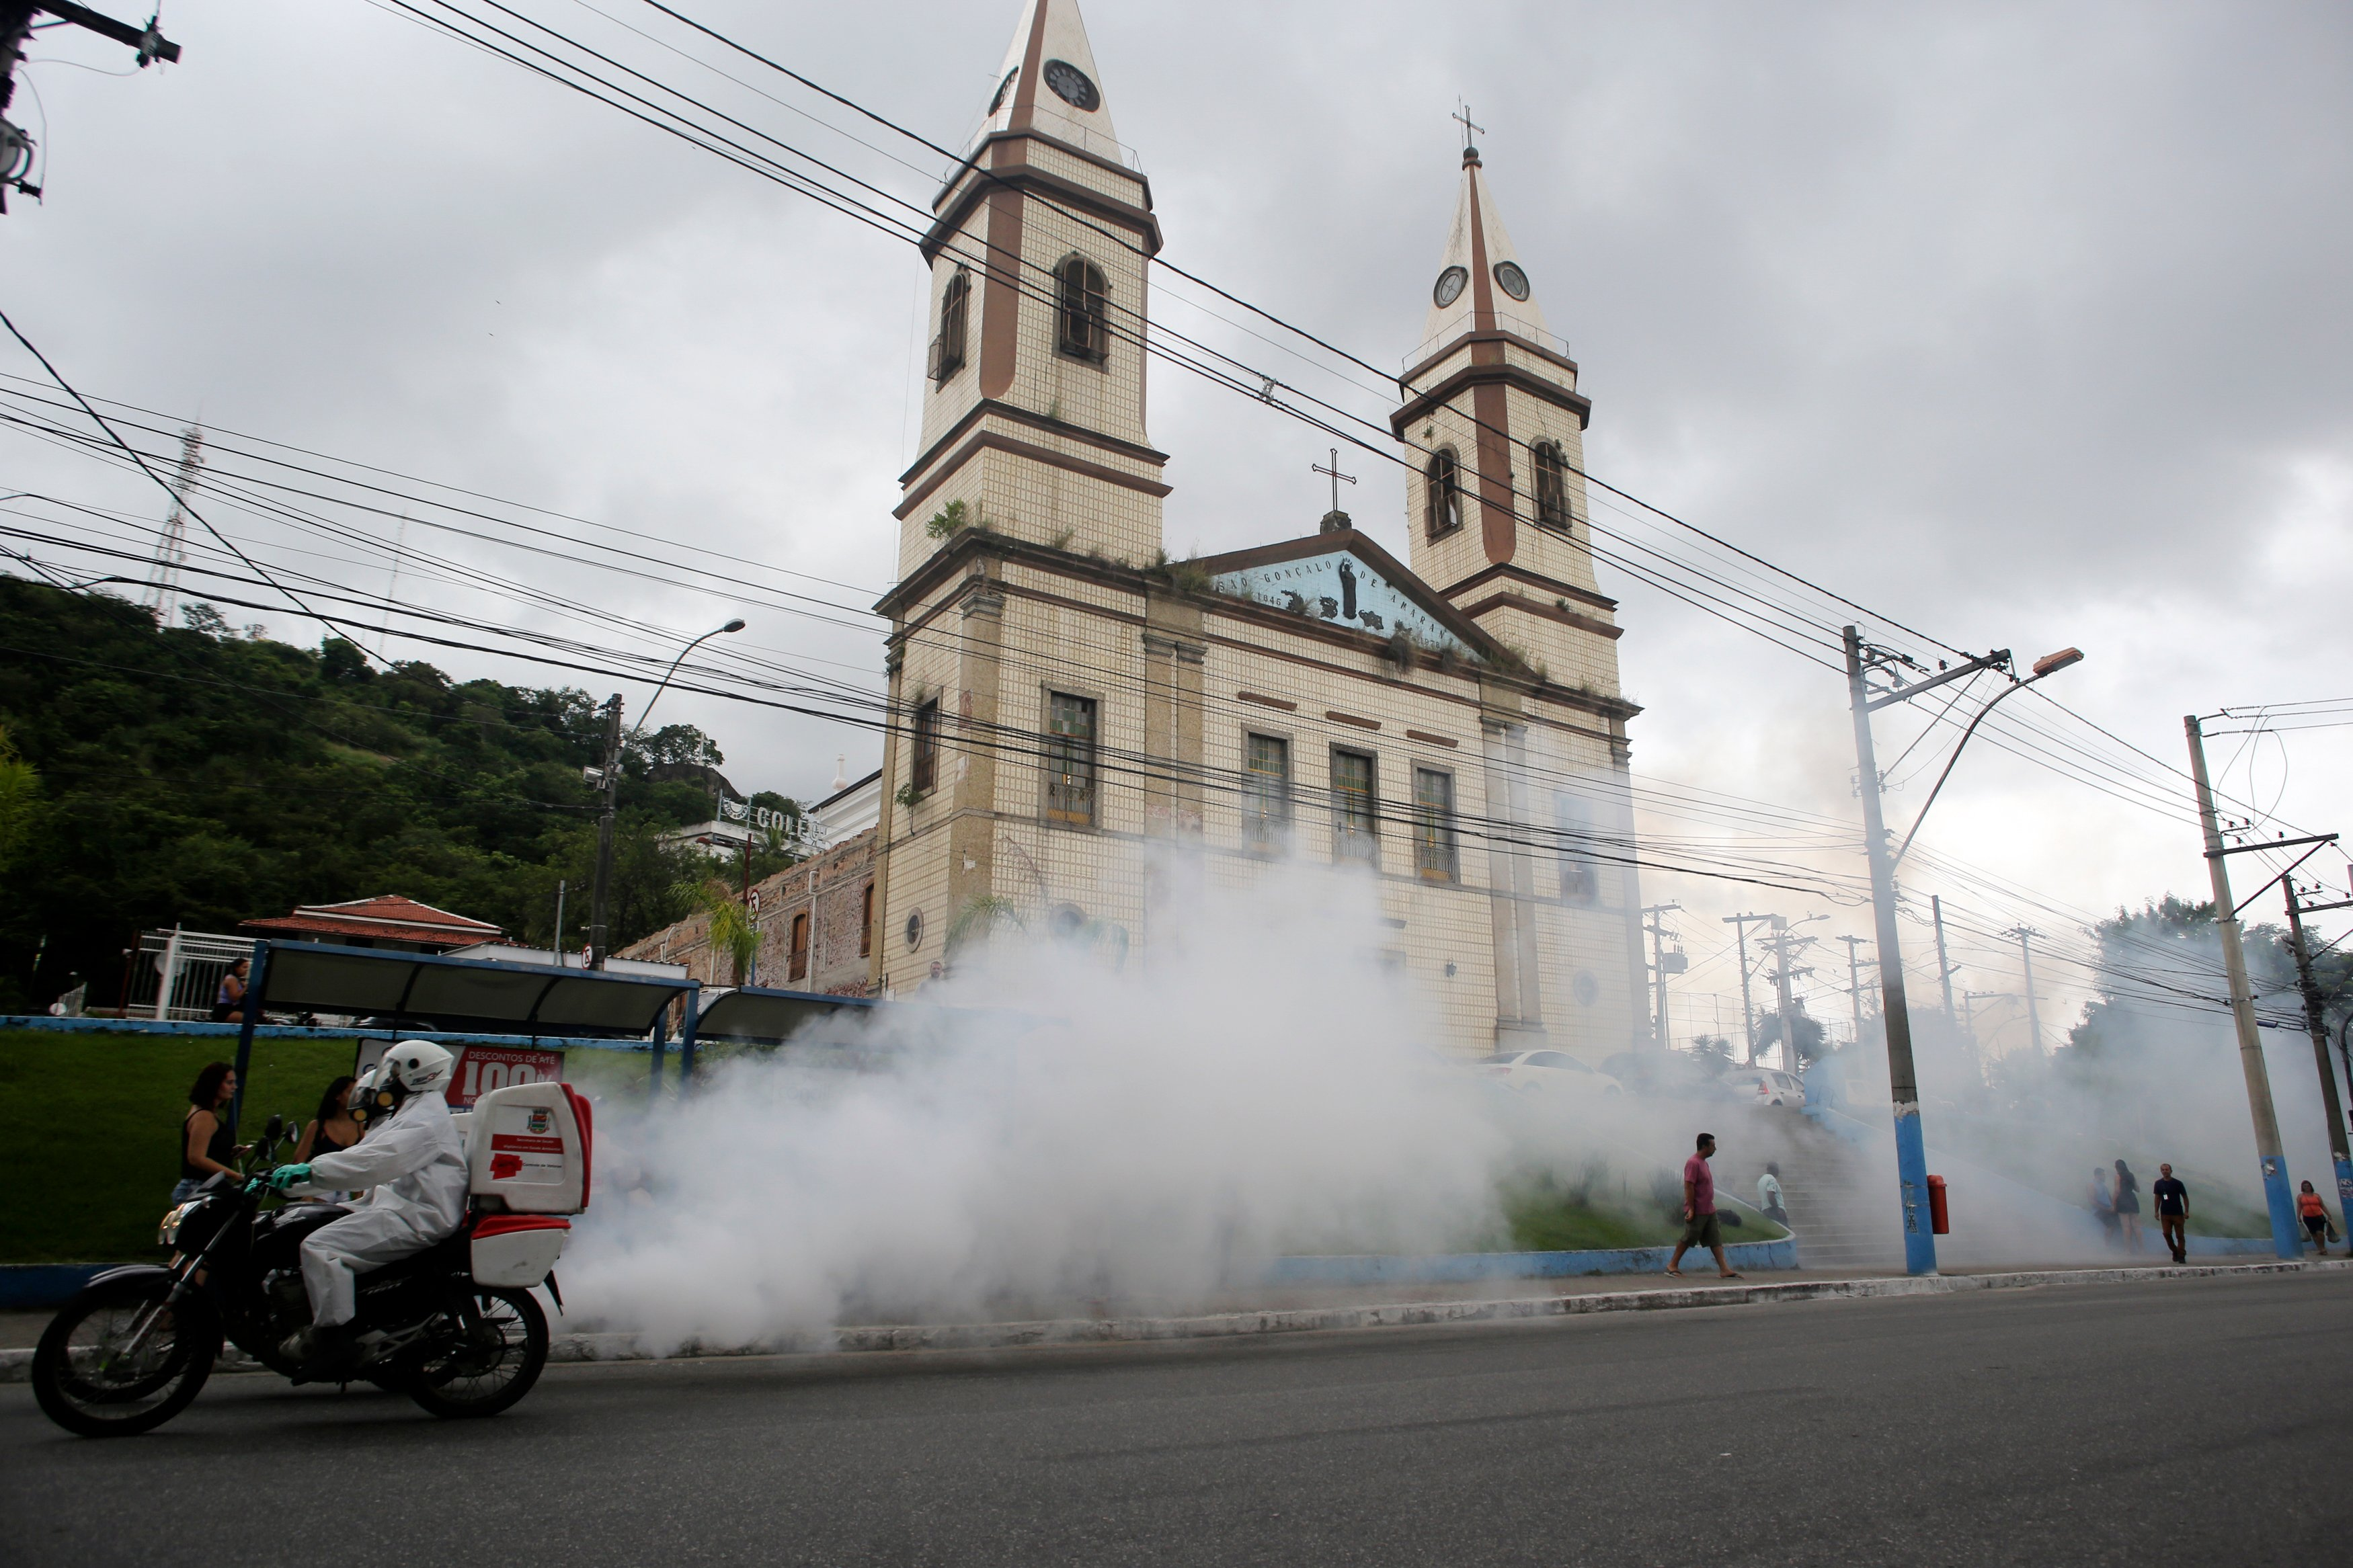 Endemic control agents disinfecting the city on 'motofogs' (A motorcycle equipped with a fumigation system) on March 31, 2020 in Sao Goncalo, Brazil. (Photo by Luis Alvarenga/Getty Images)